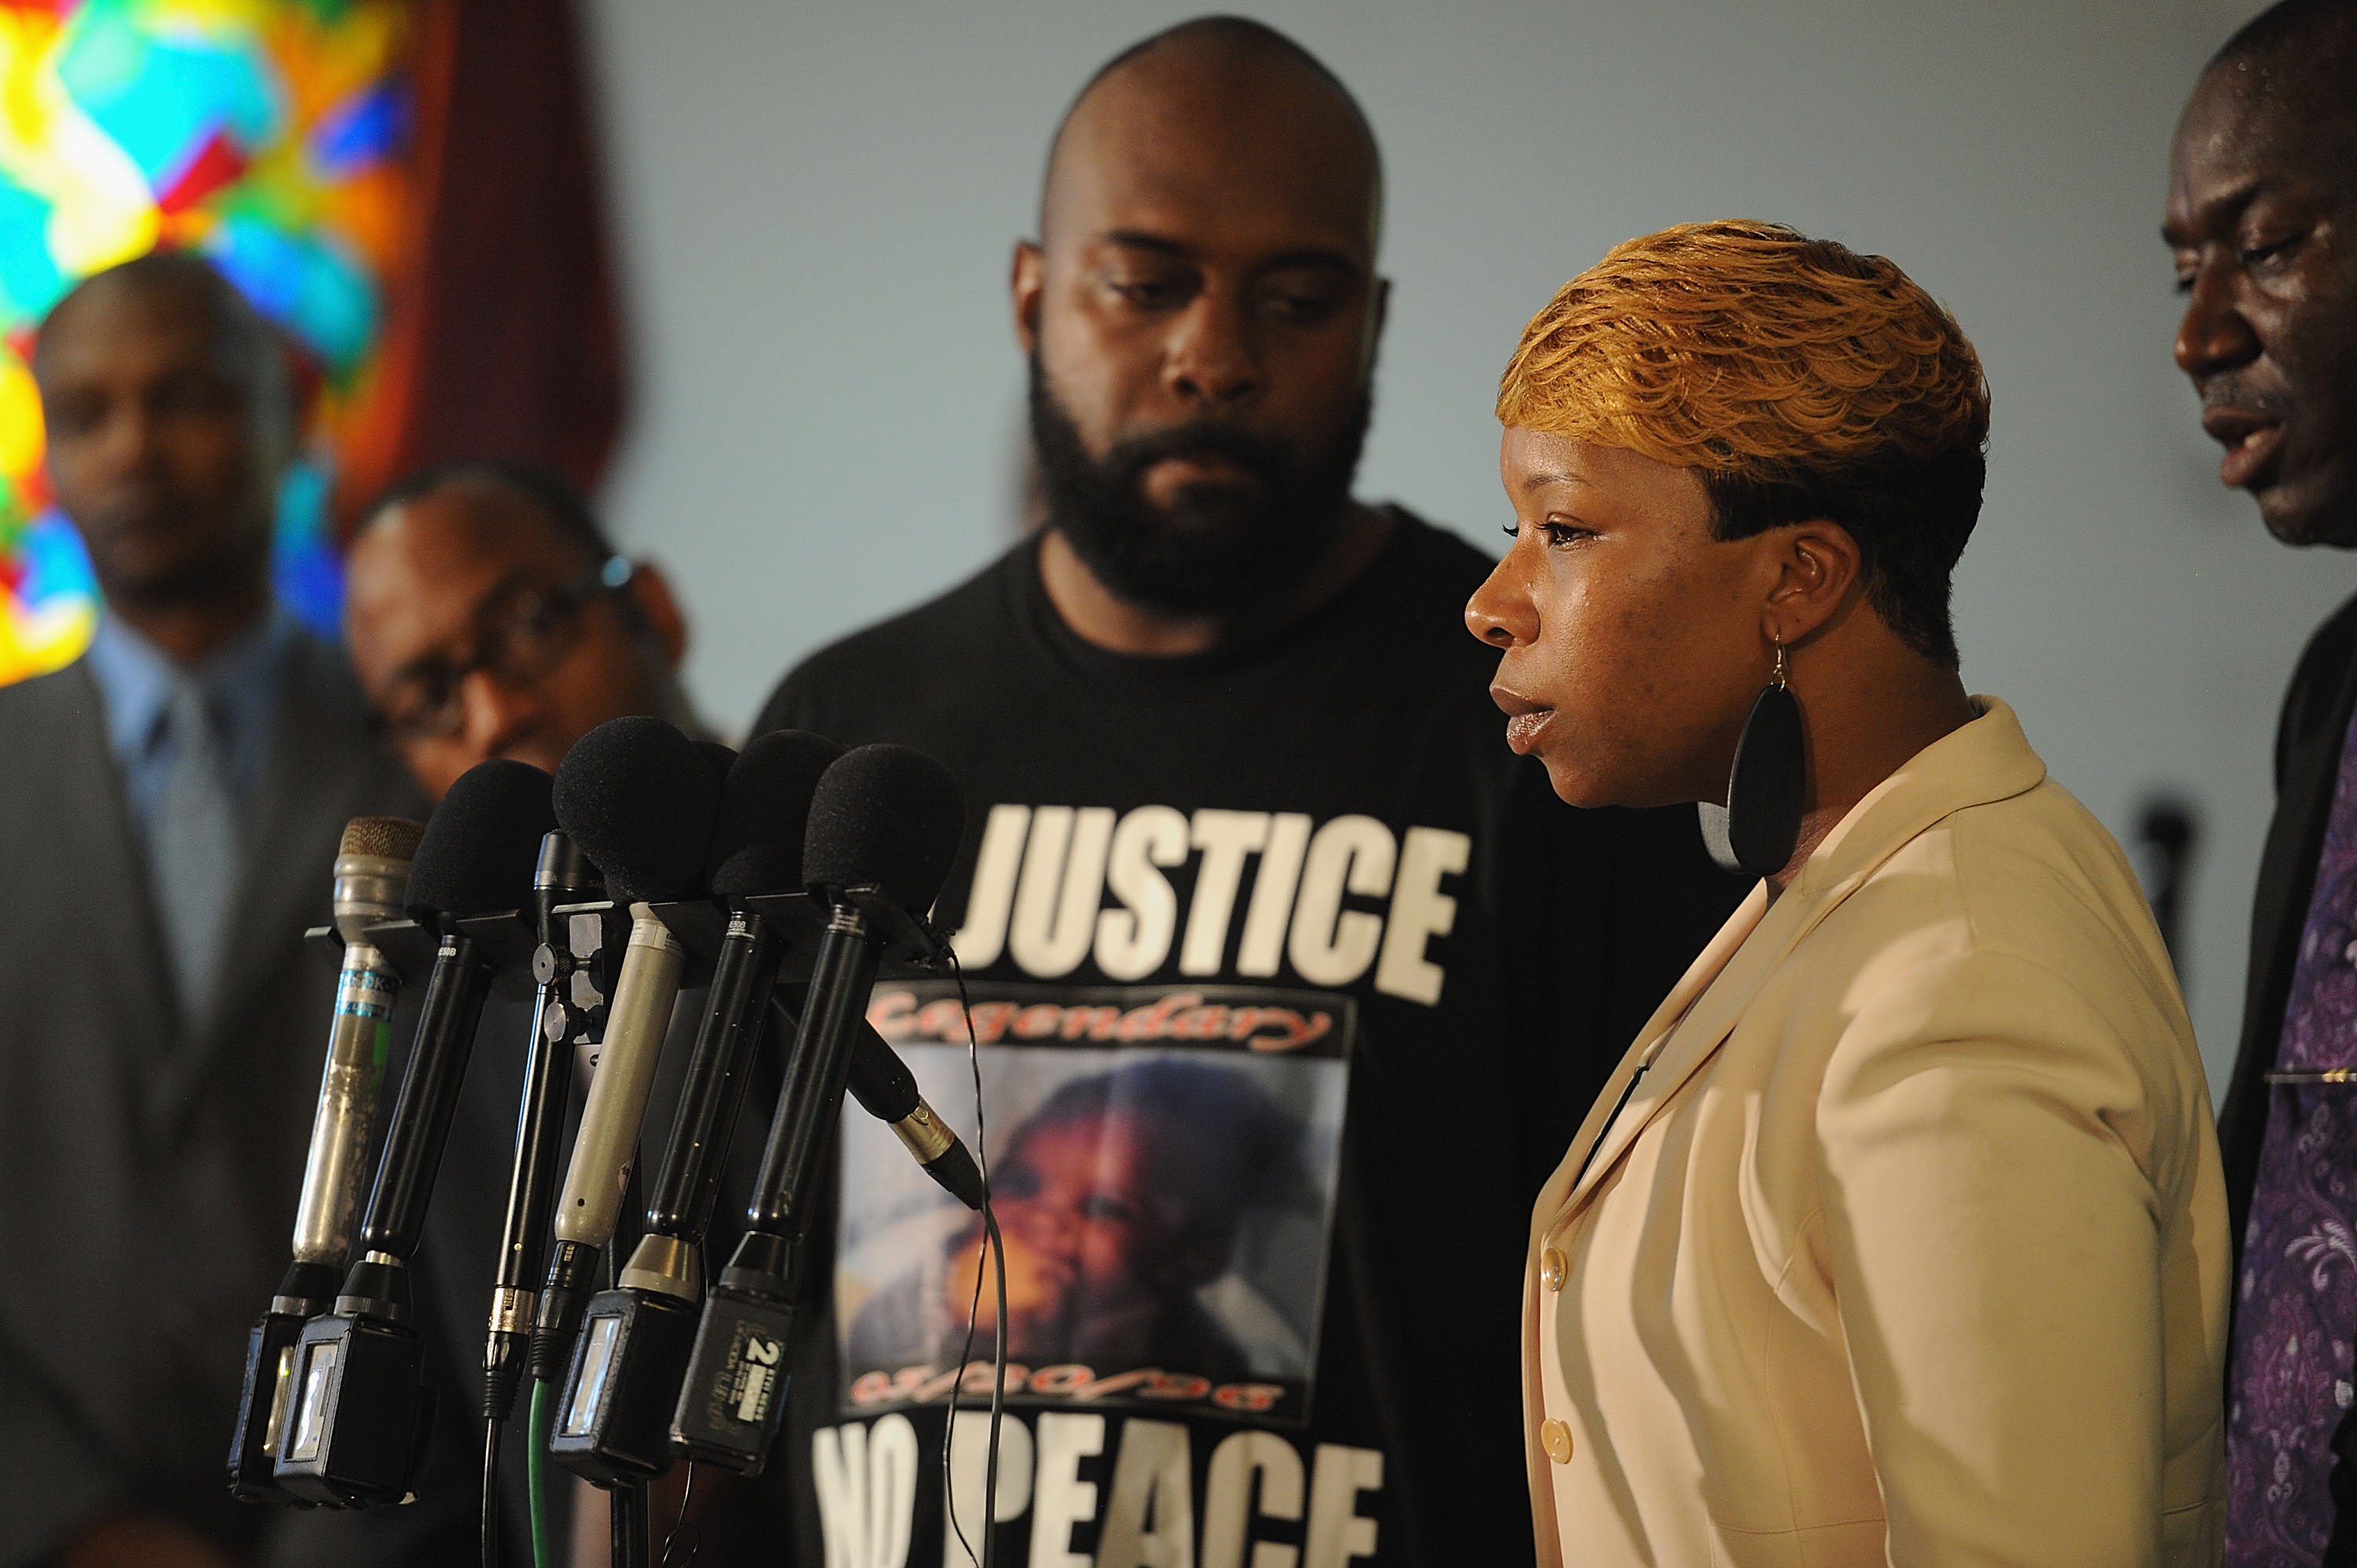 Lesley McSpadden, mother of slain 18 year-old Michael Brown speaks during a press conference at Jennings Mason Temple Church of God In Christ, on August 11, 2014 in Jennings, Missouri.